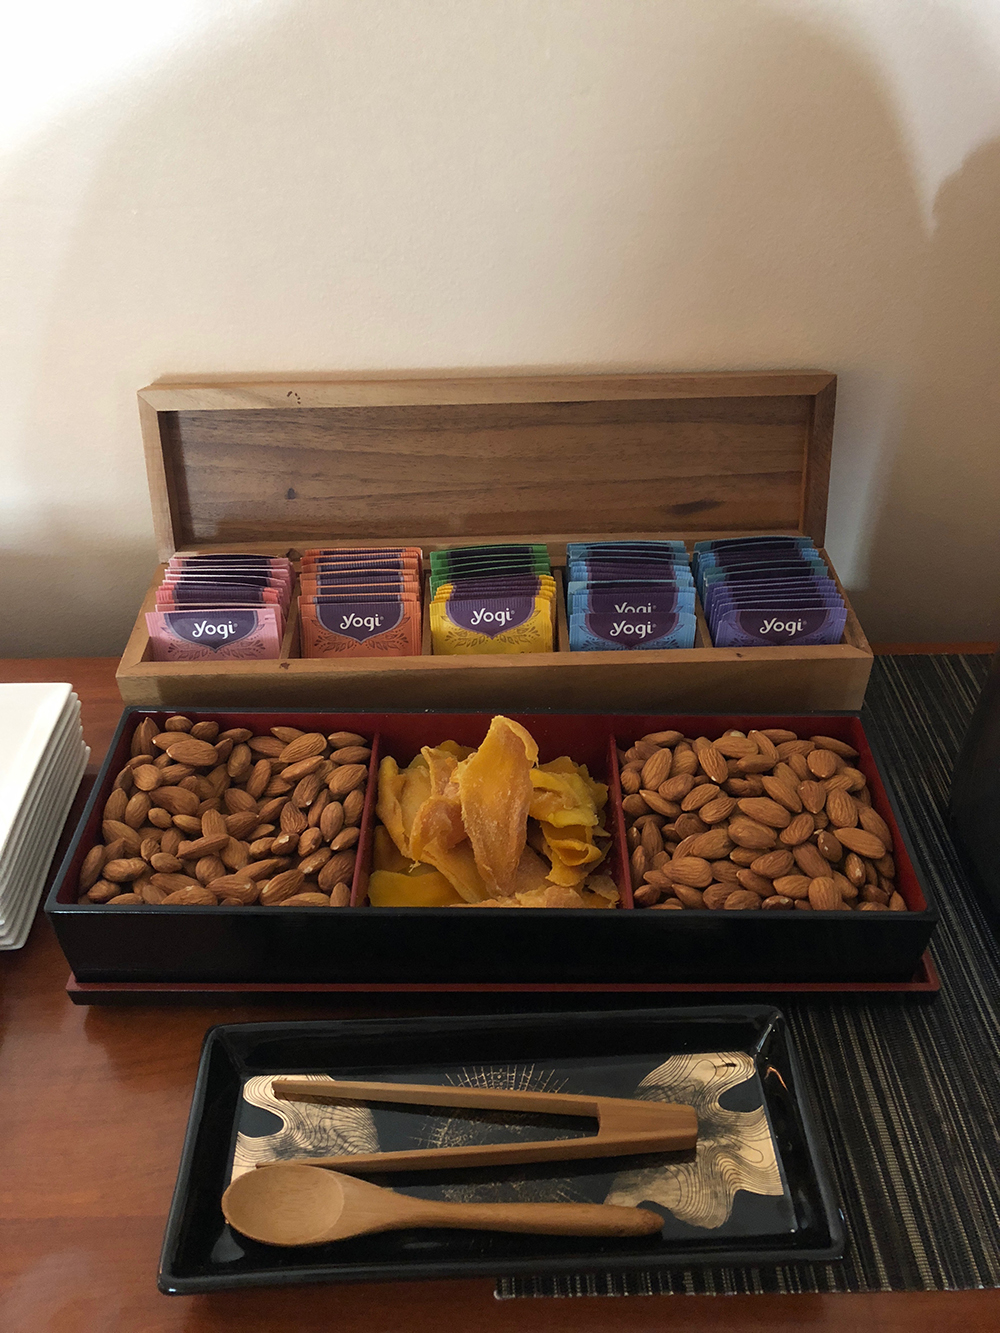 Guests can also snack on nuts, dried fruit, and an assortment of teas.